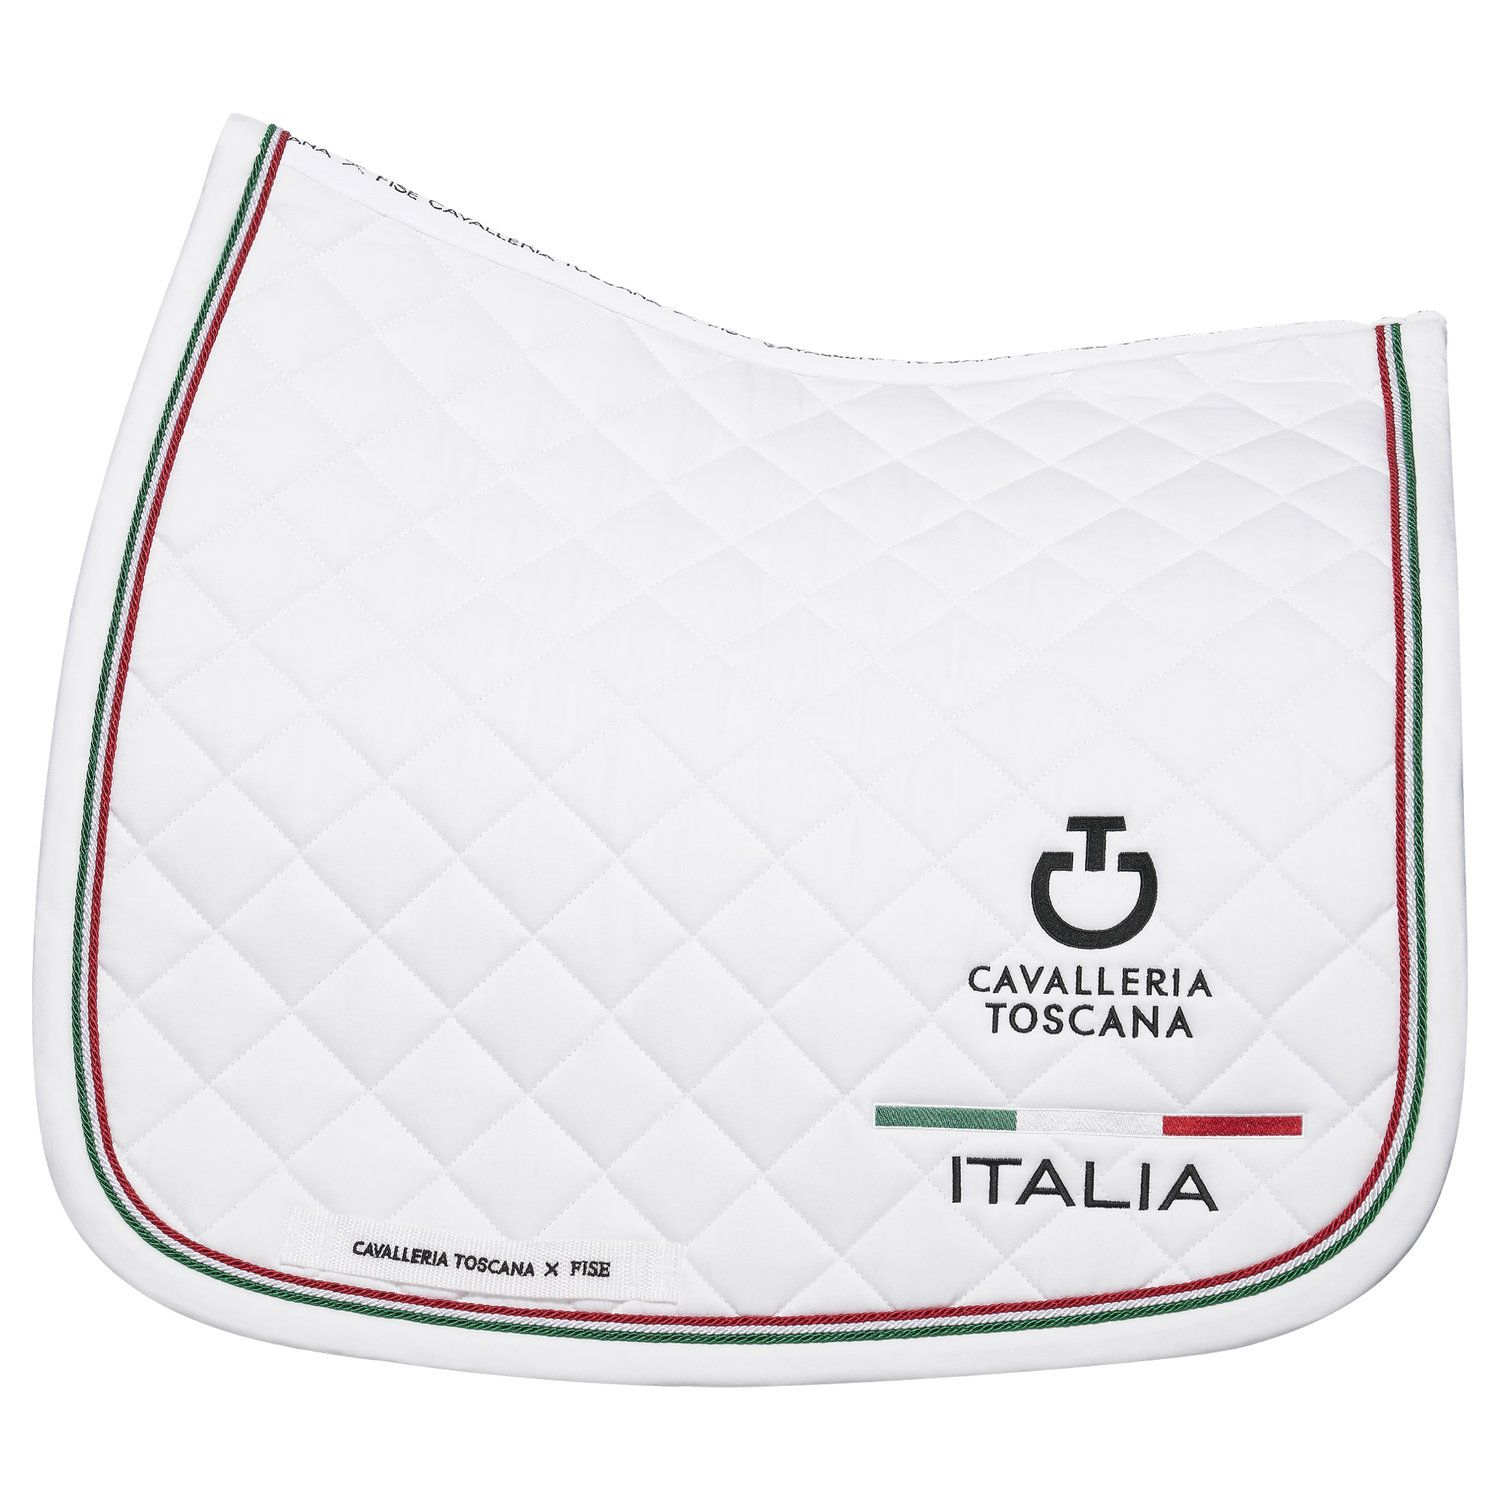 FISE dressage saddle pad